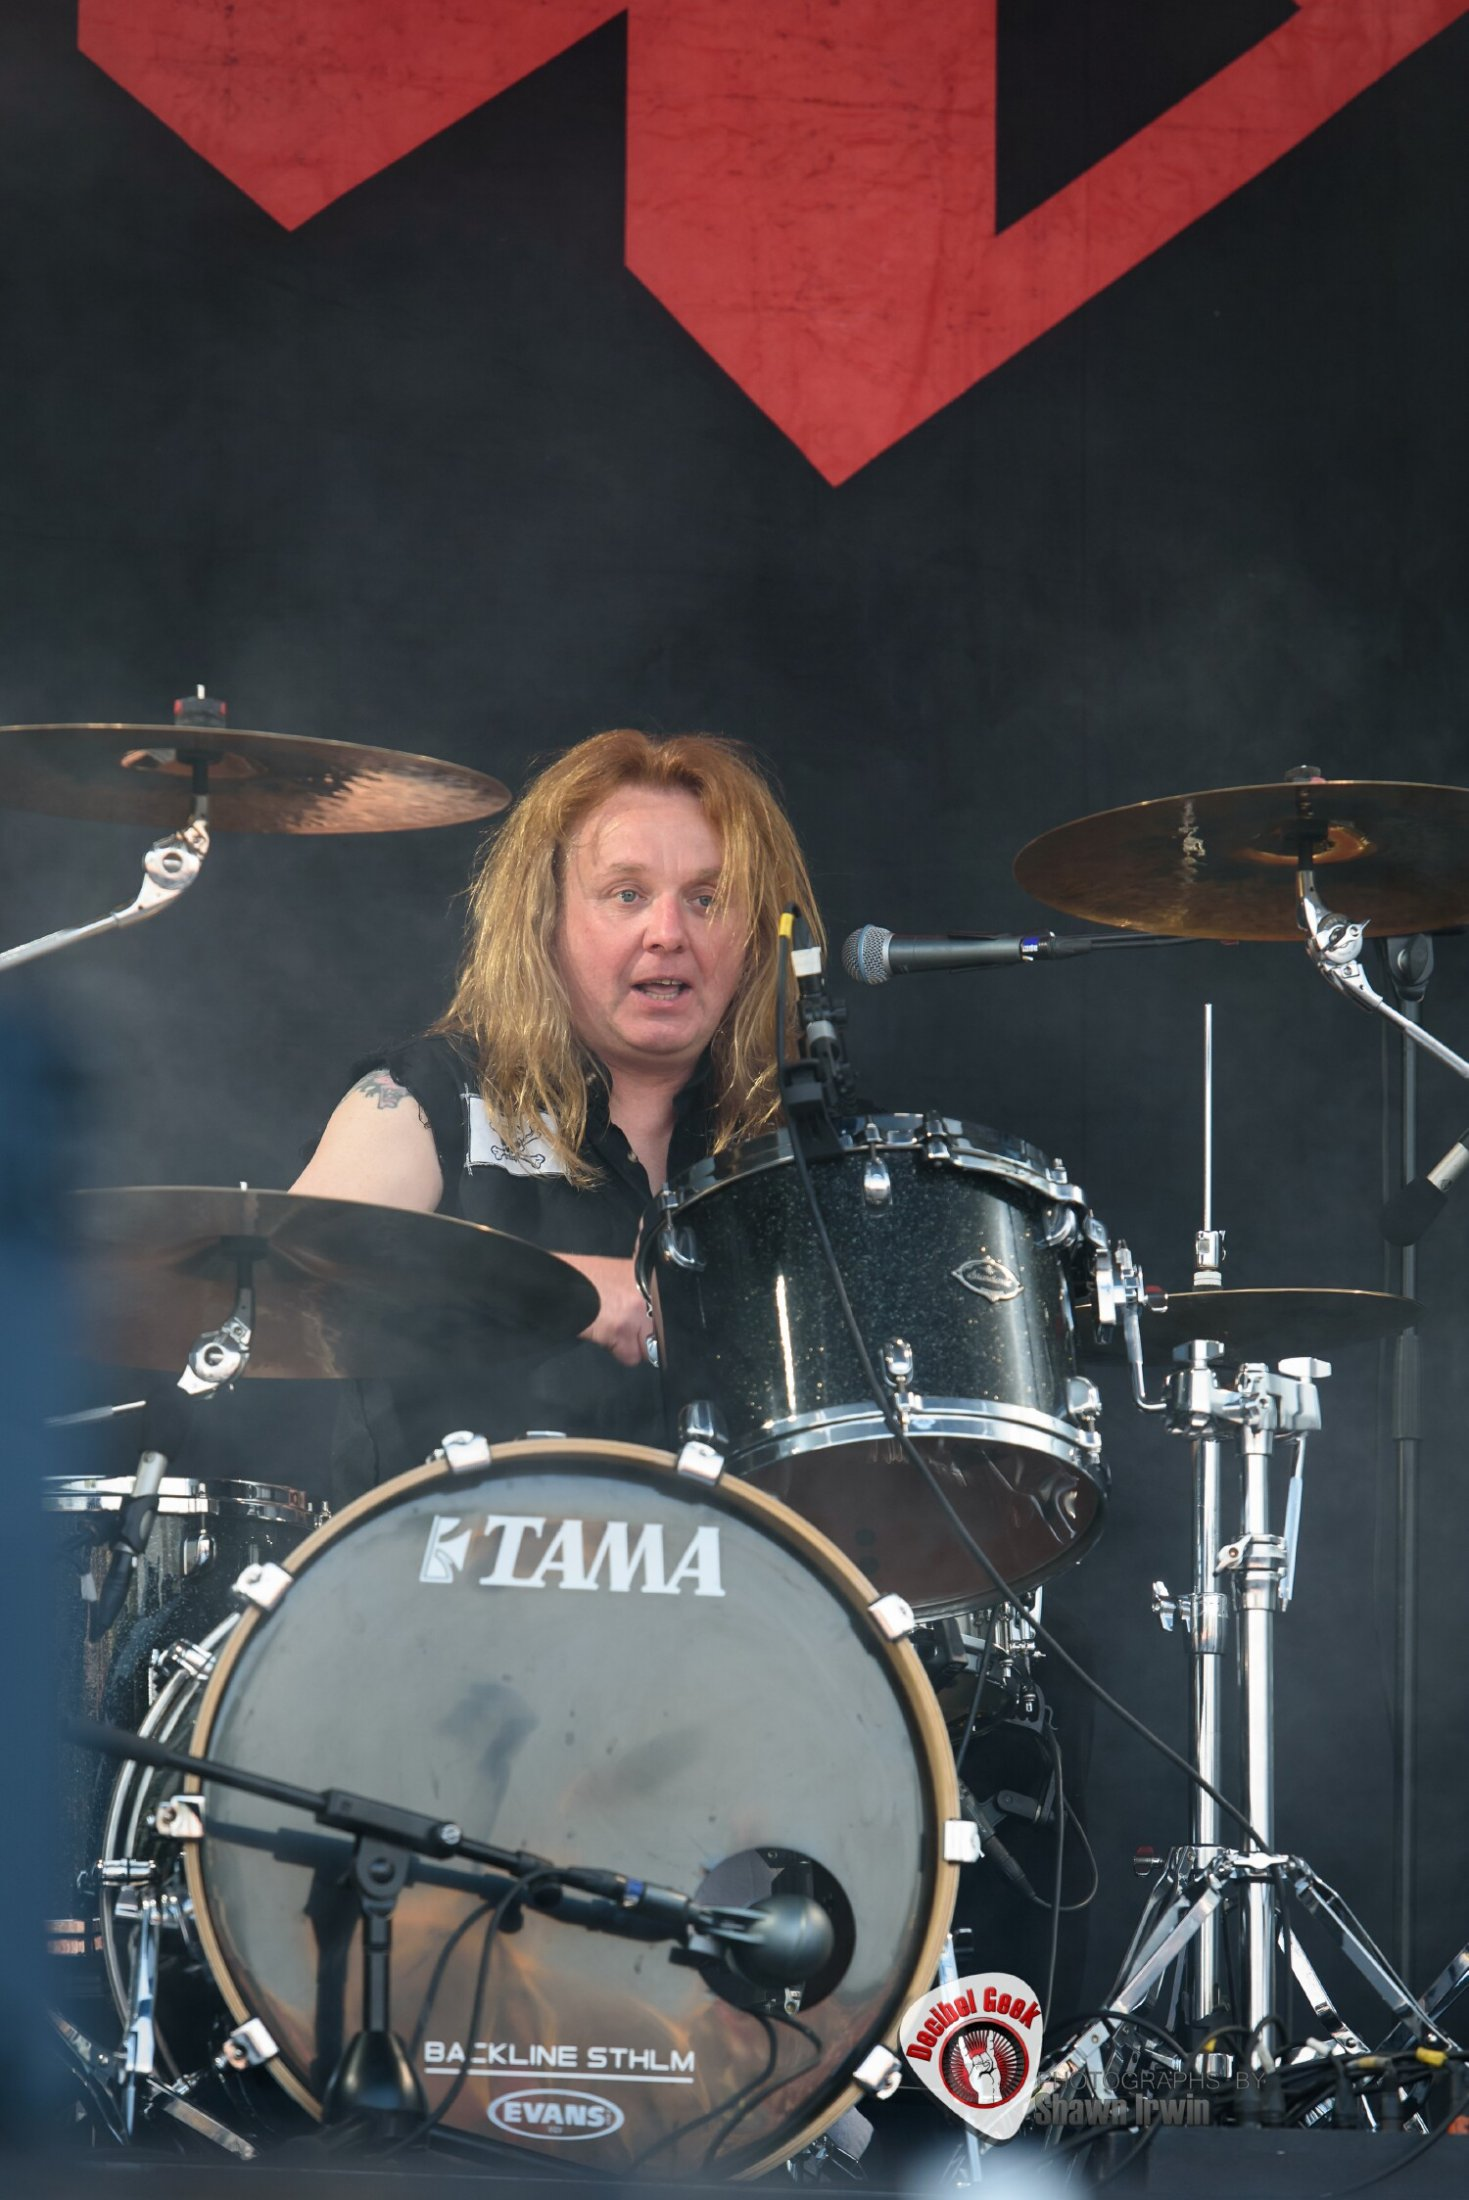 Demon #26-Sweden Rock 2019-Shawn Irwin